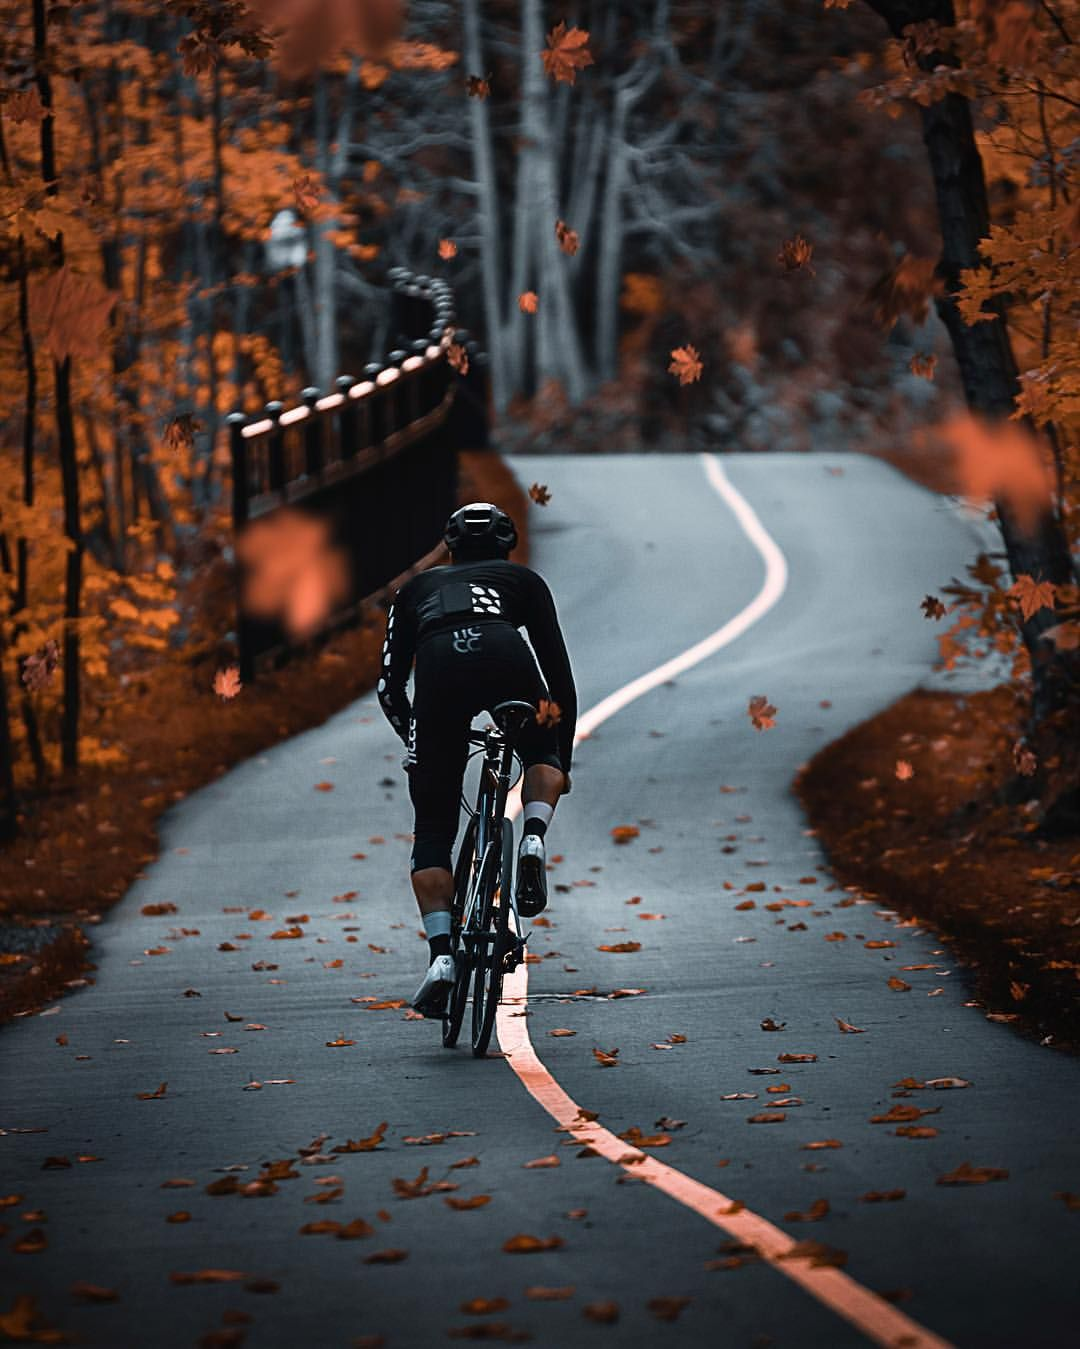 Instagram Alexcormier97 Cycling Autumn Autumnleaves